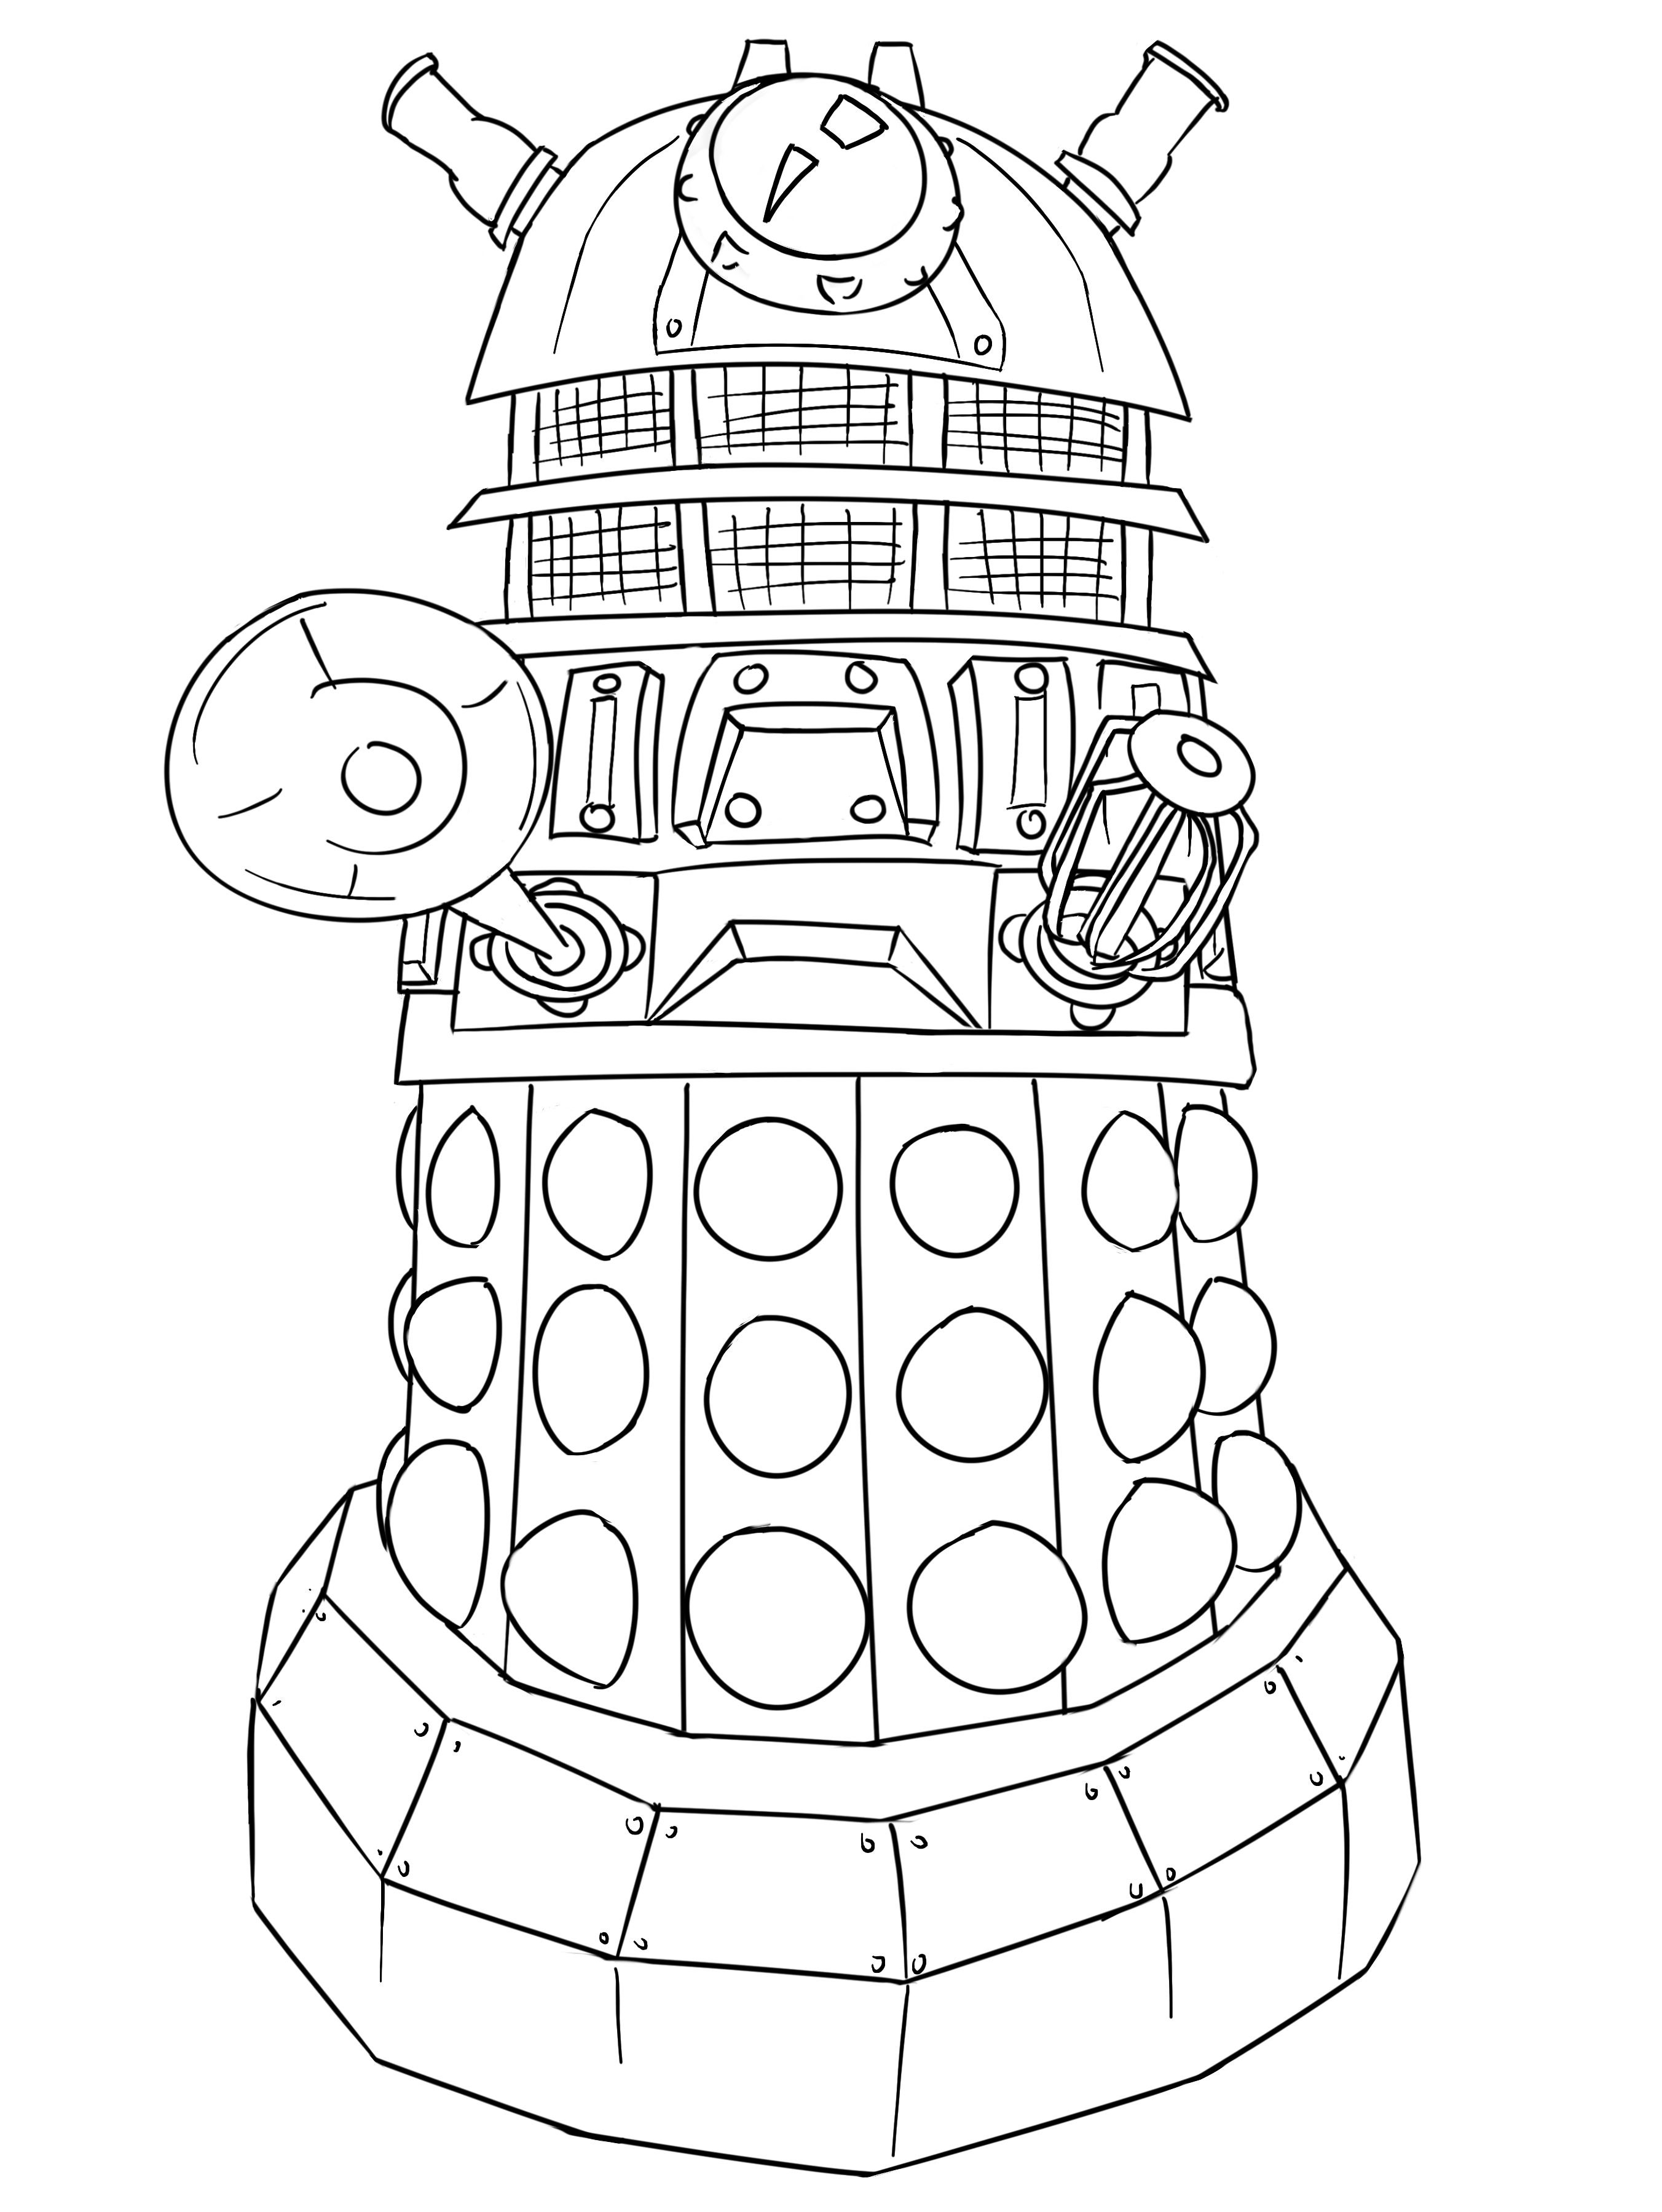 doctor who pictures to colour doctor who wibbly wobbly timey wimey coloring pages pictures doctor who to colour